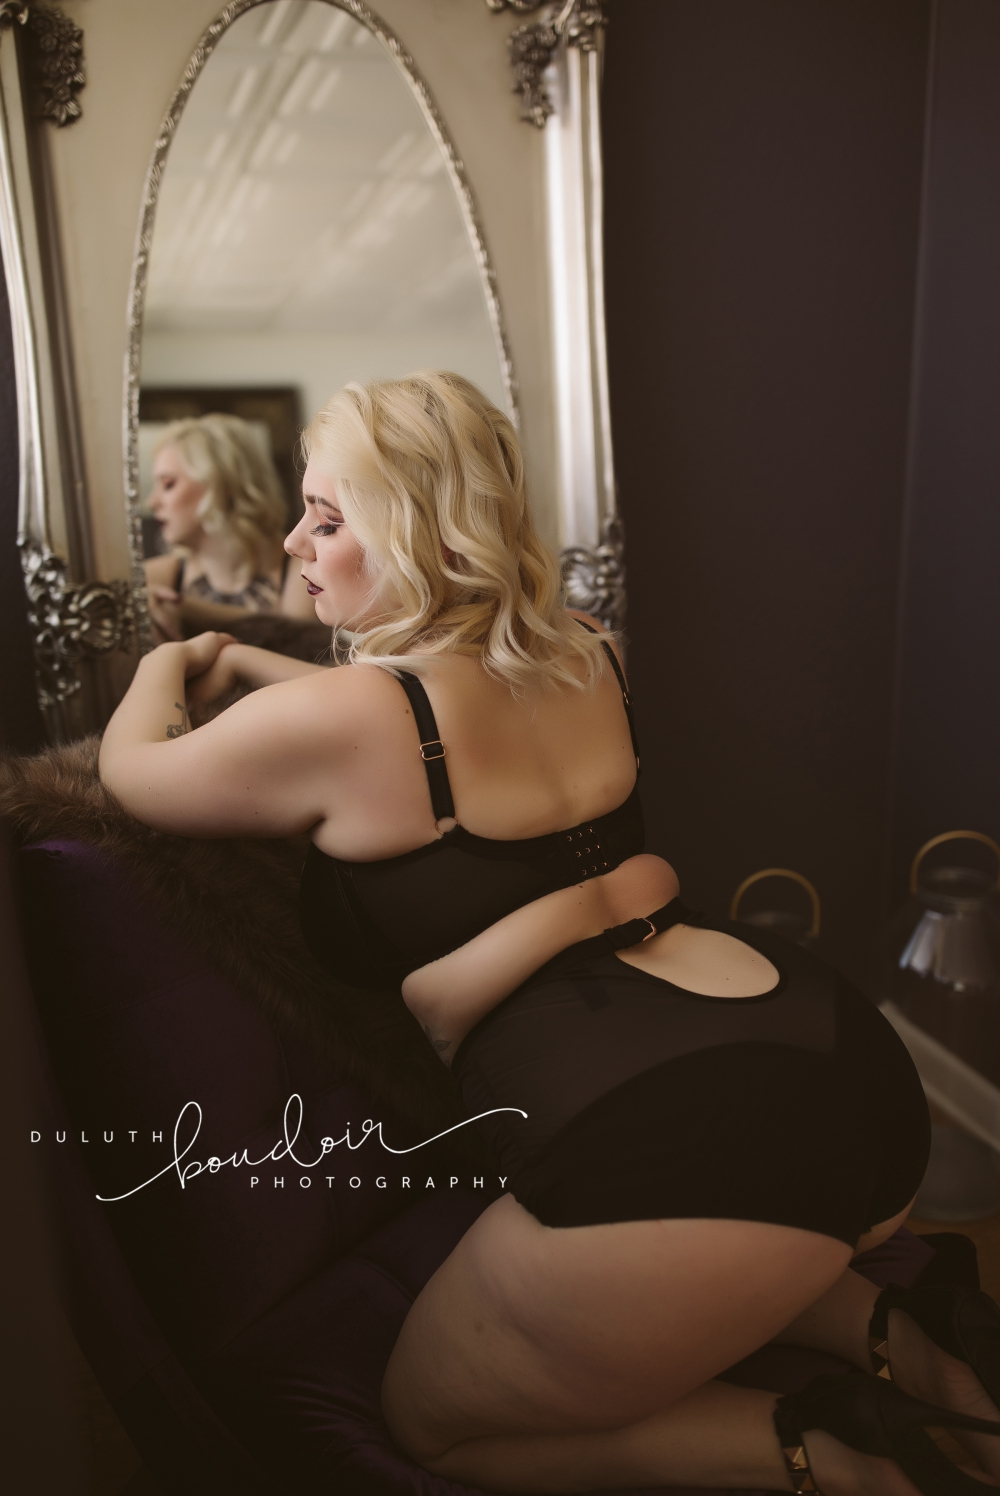 duluth_boudoir_photography_holly_41